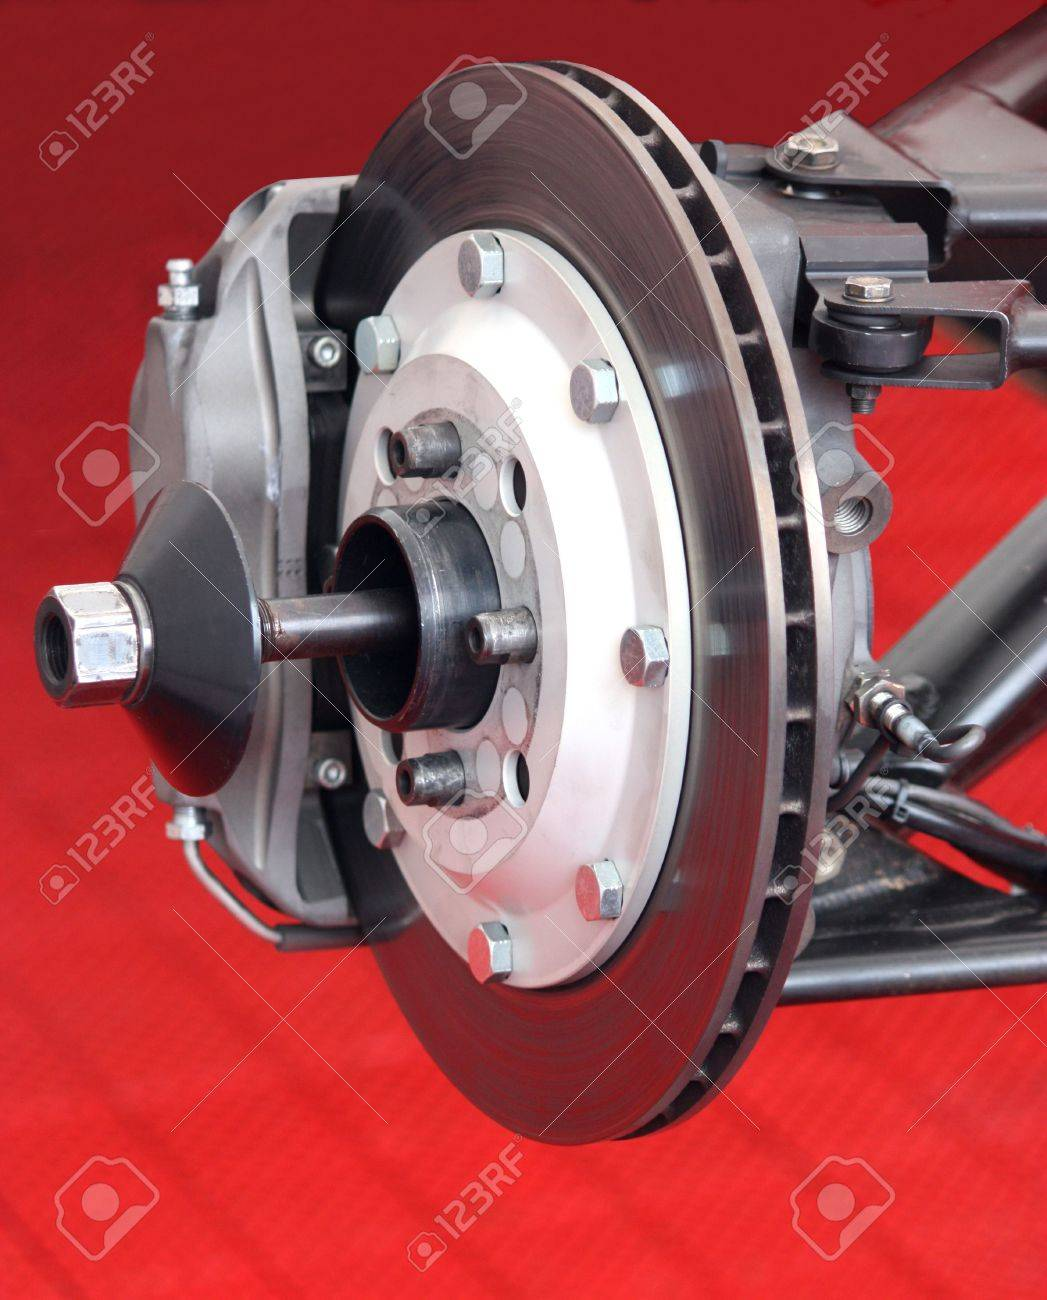 the front brake disc assembly of a racing car stock photo